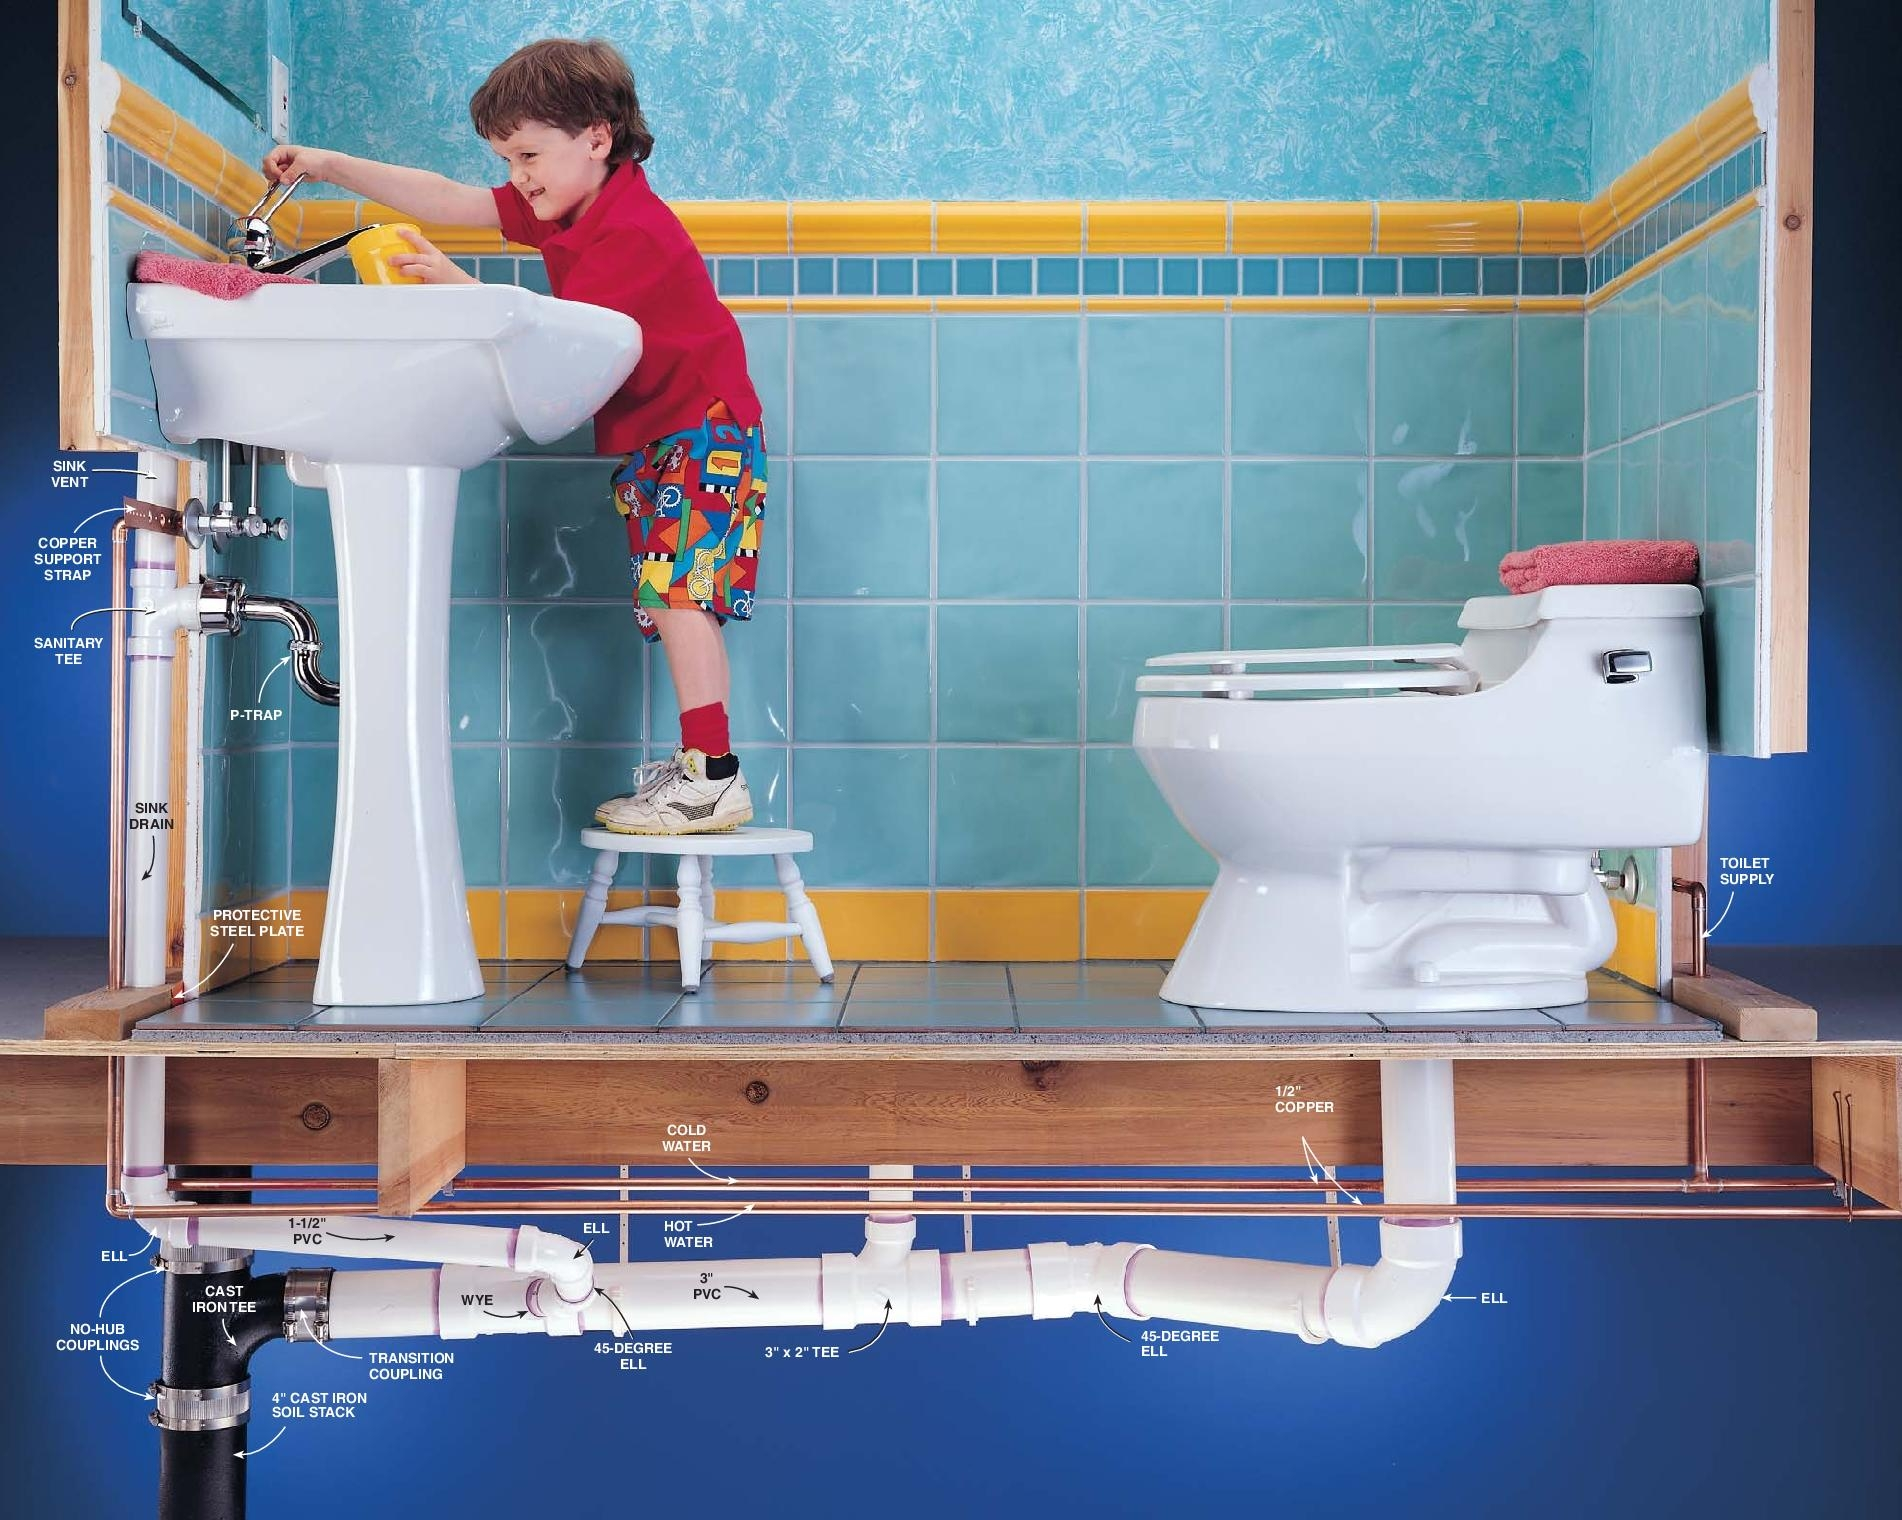 Plumbing Sherman Oaks is the most trusted company.